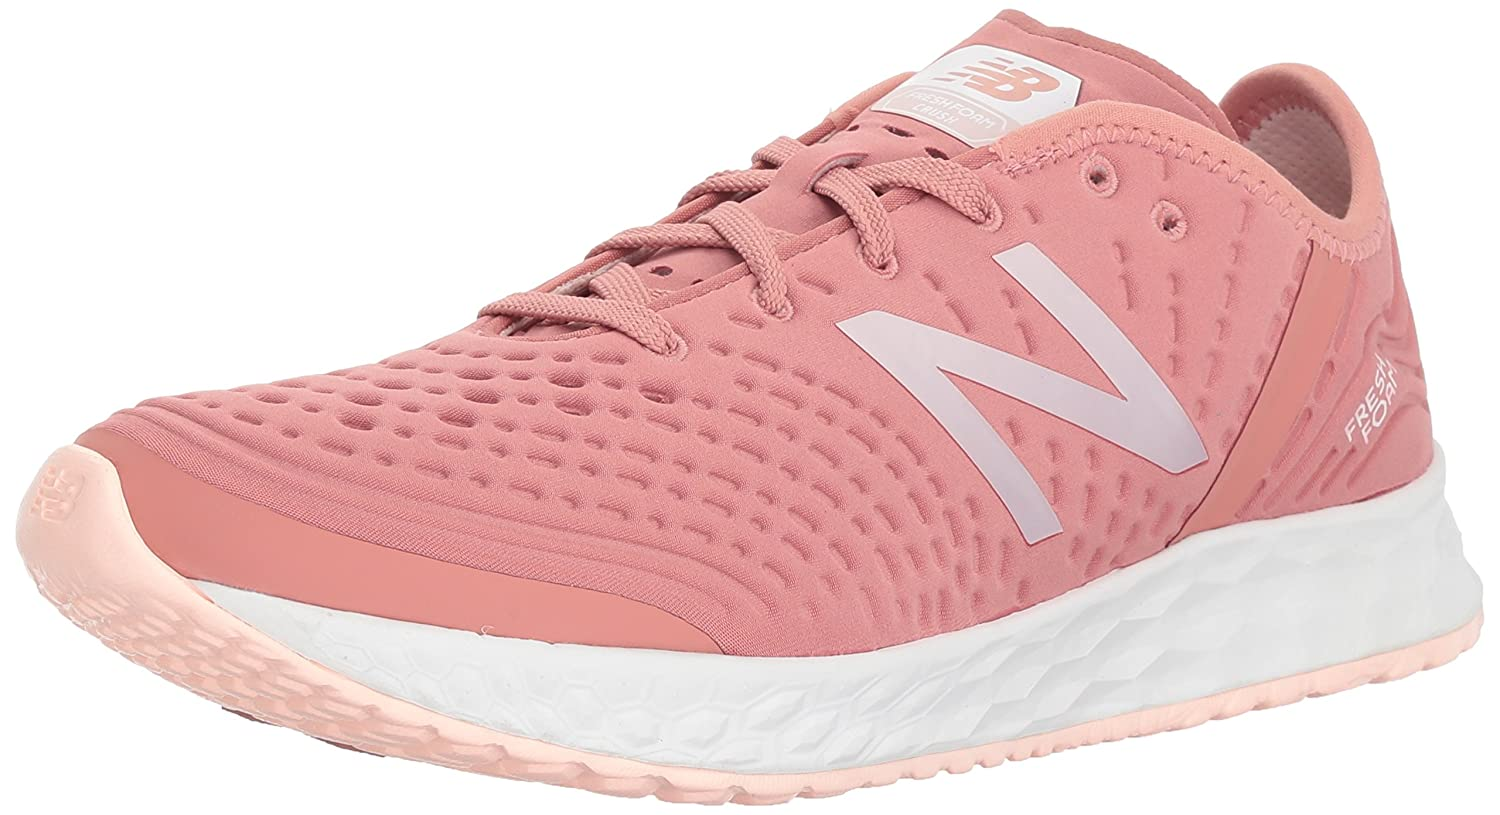 ea4a6e9143 New Balance Women's Fresh Foam Crush V1 Cross Trainer